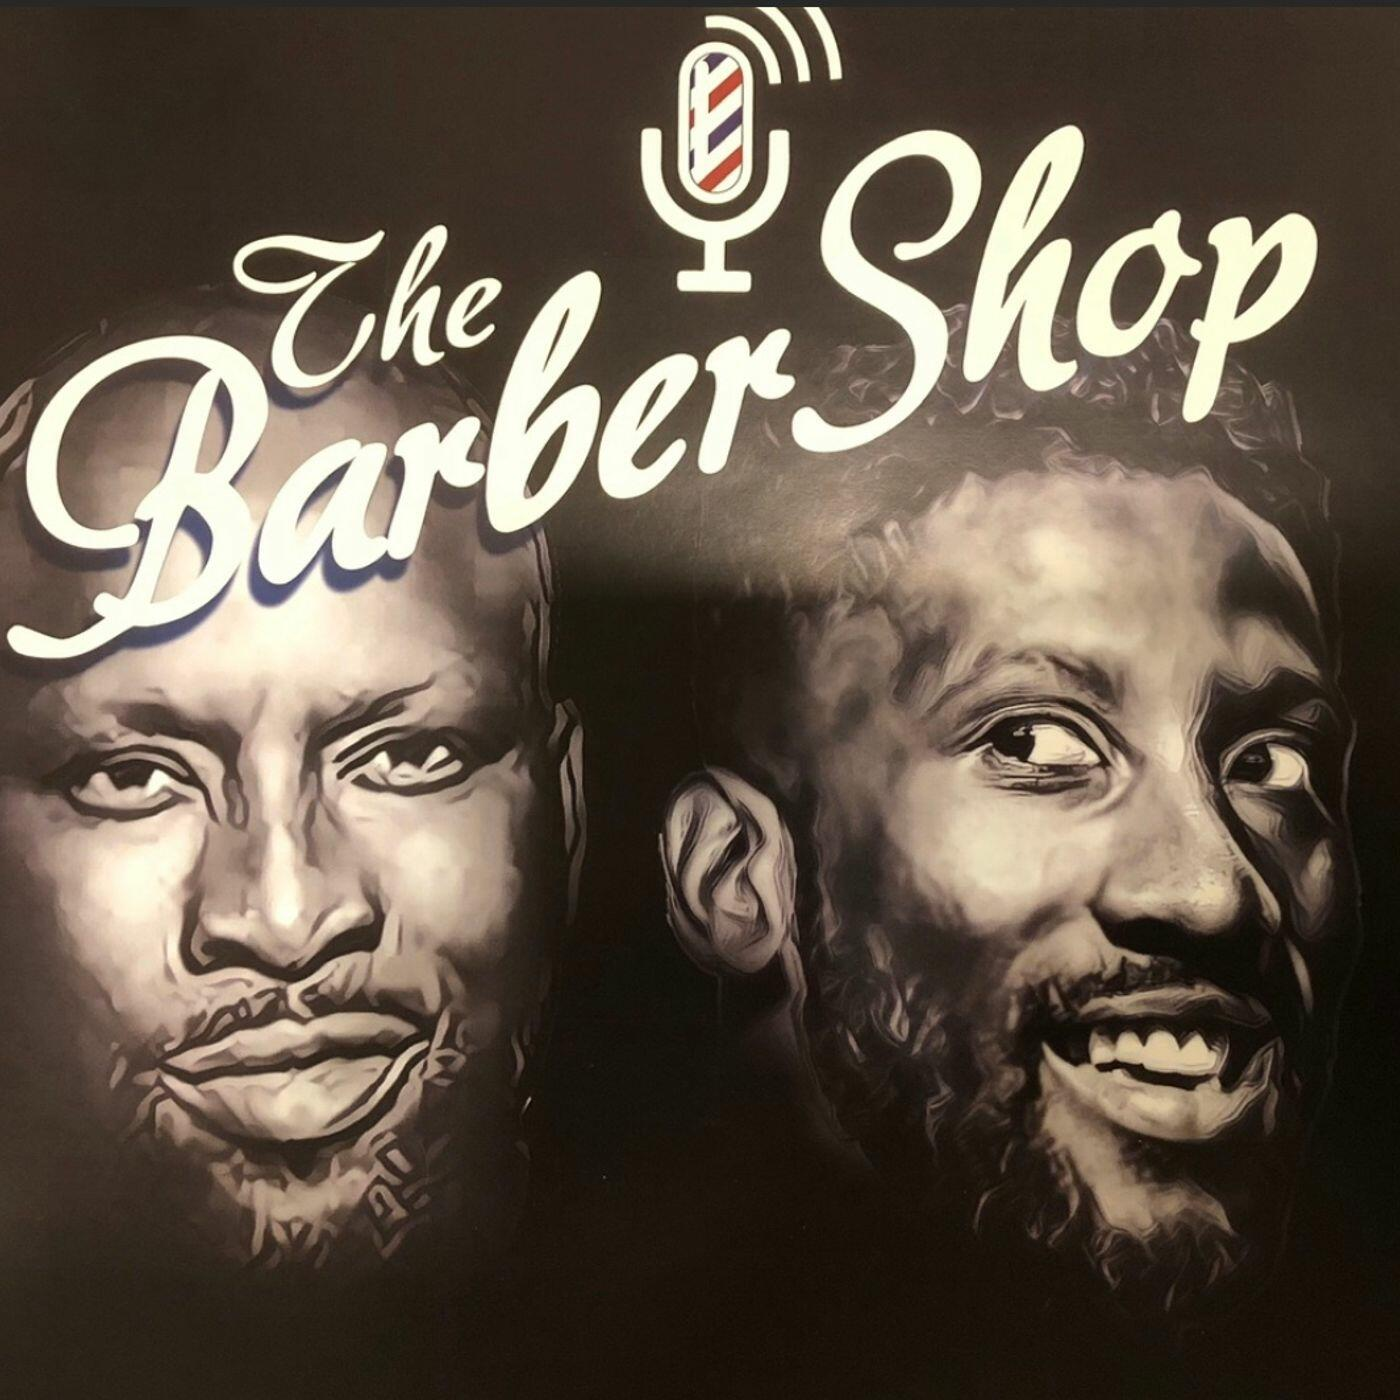 Listen to The Barbershop is BACK - The Mo' Money Episode | The Barbershop | Podcasts